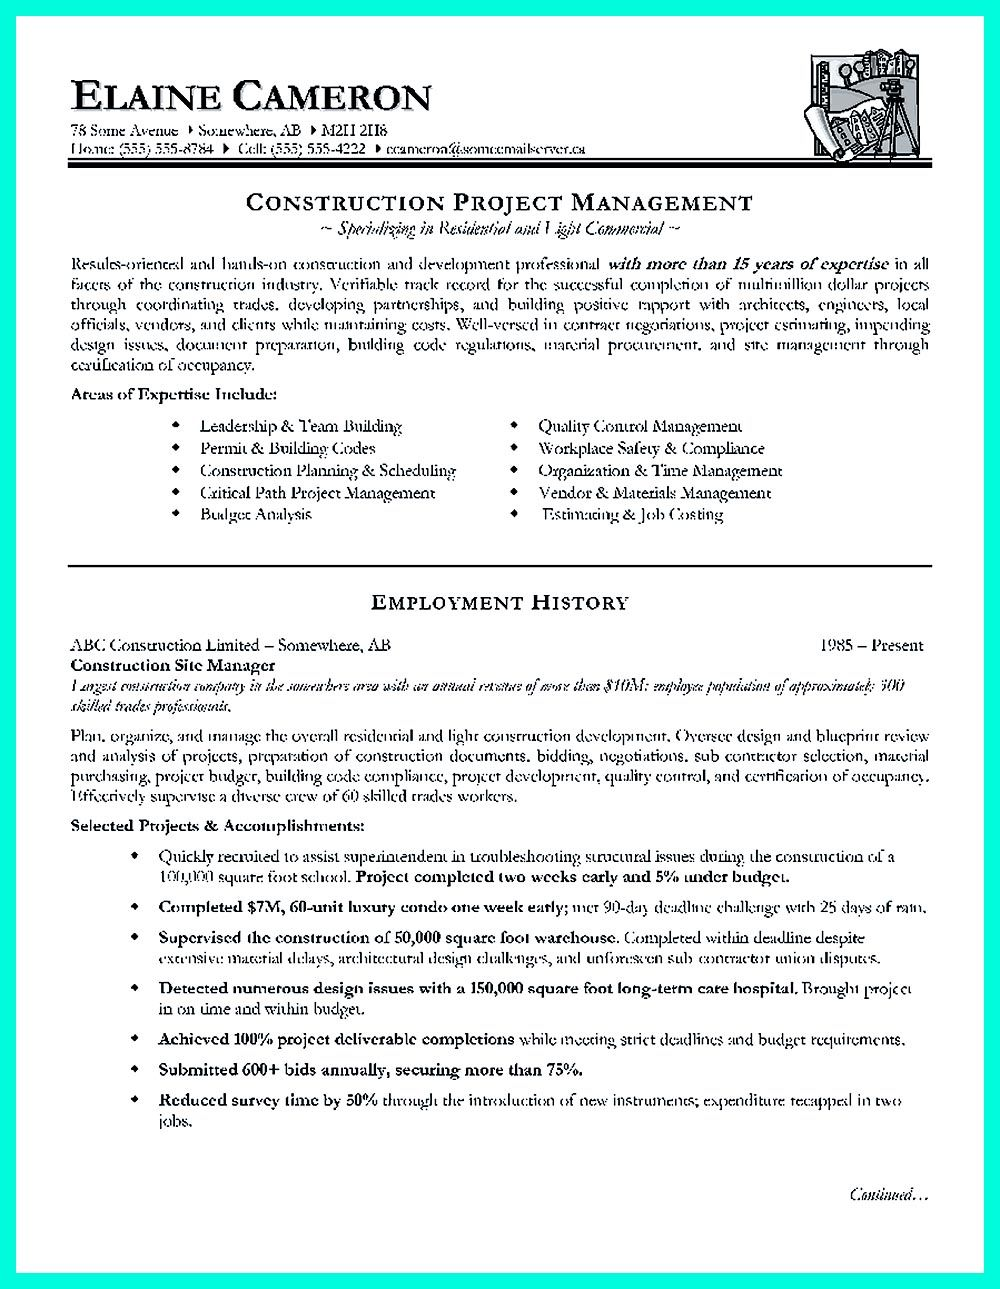 Construction management resume is designed for a